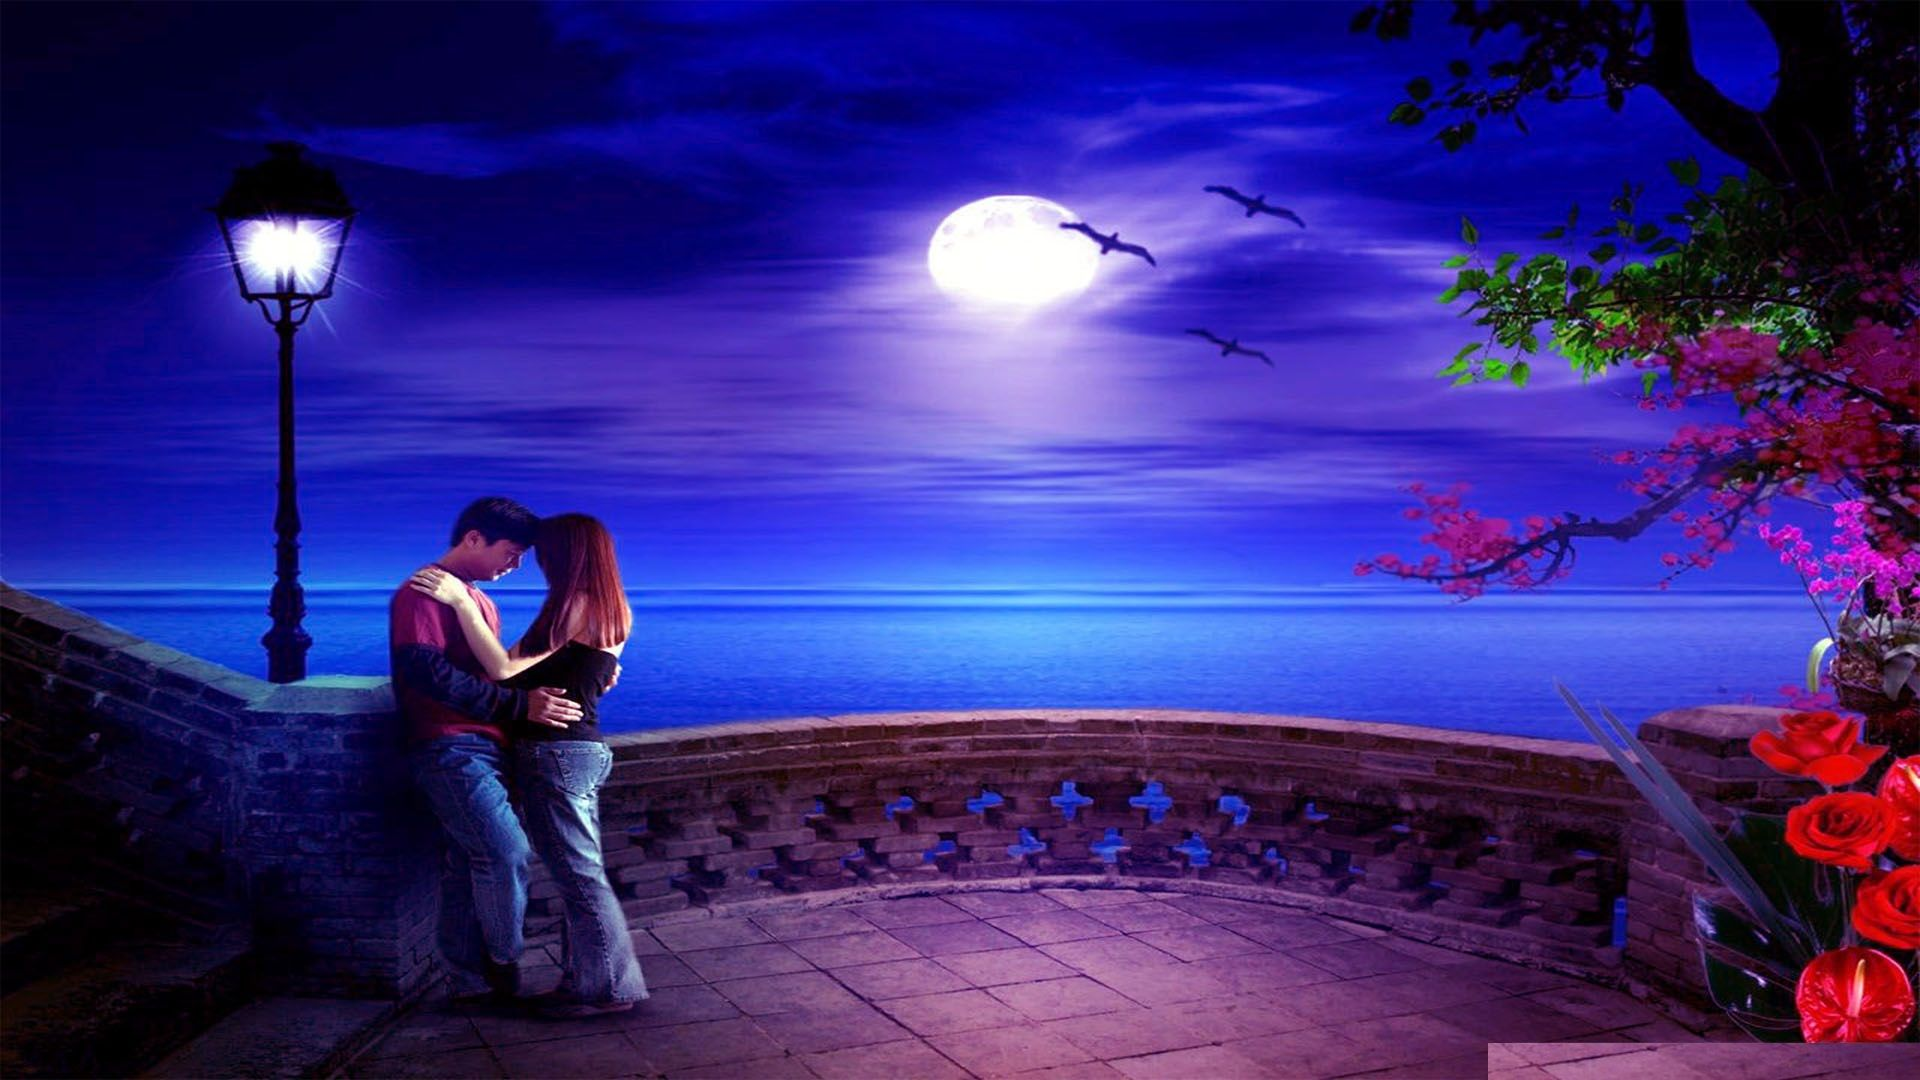 Love Wallpapers With Messages Hd : Romantic Love HD Wallpapers : Find best latest Romantic ...